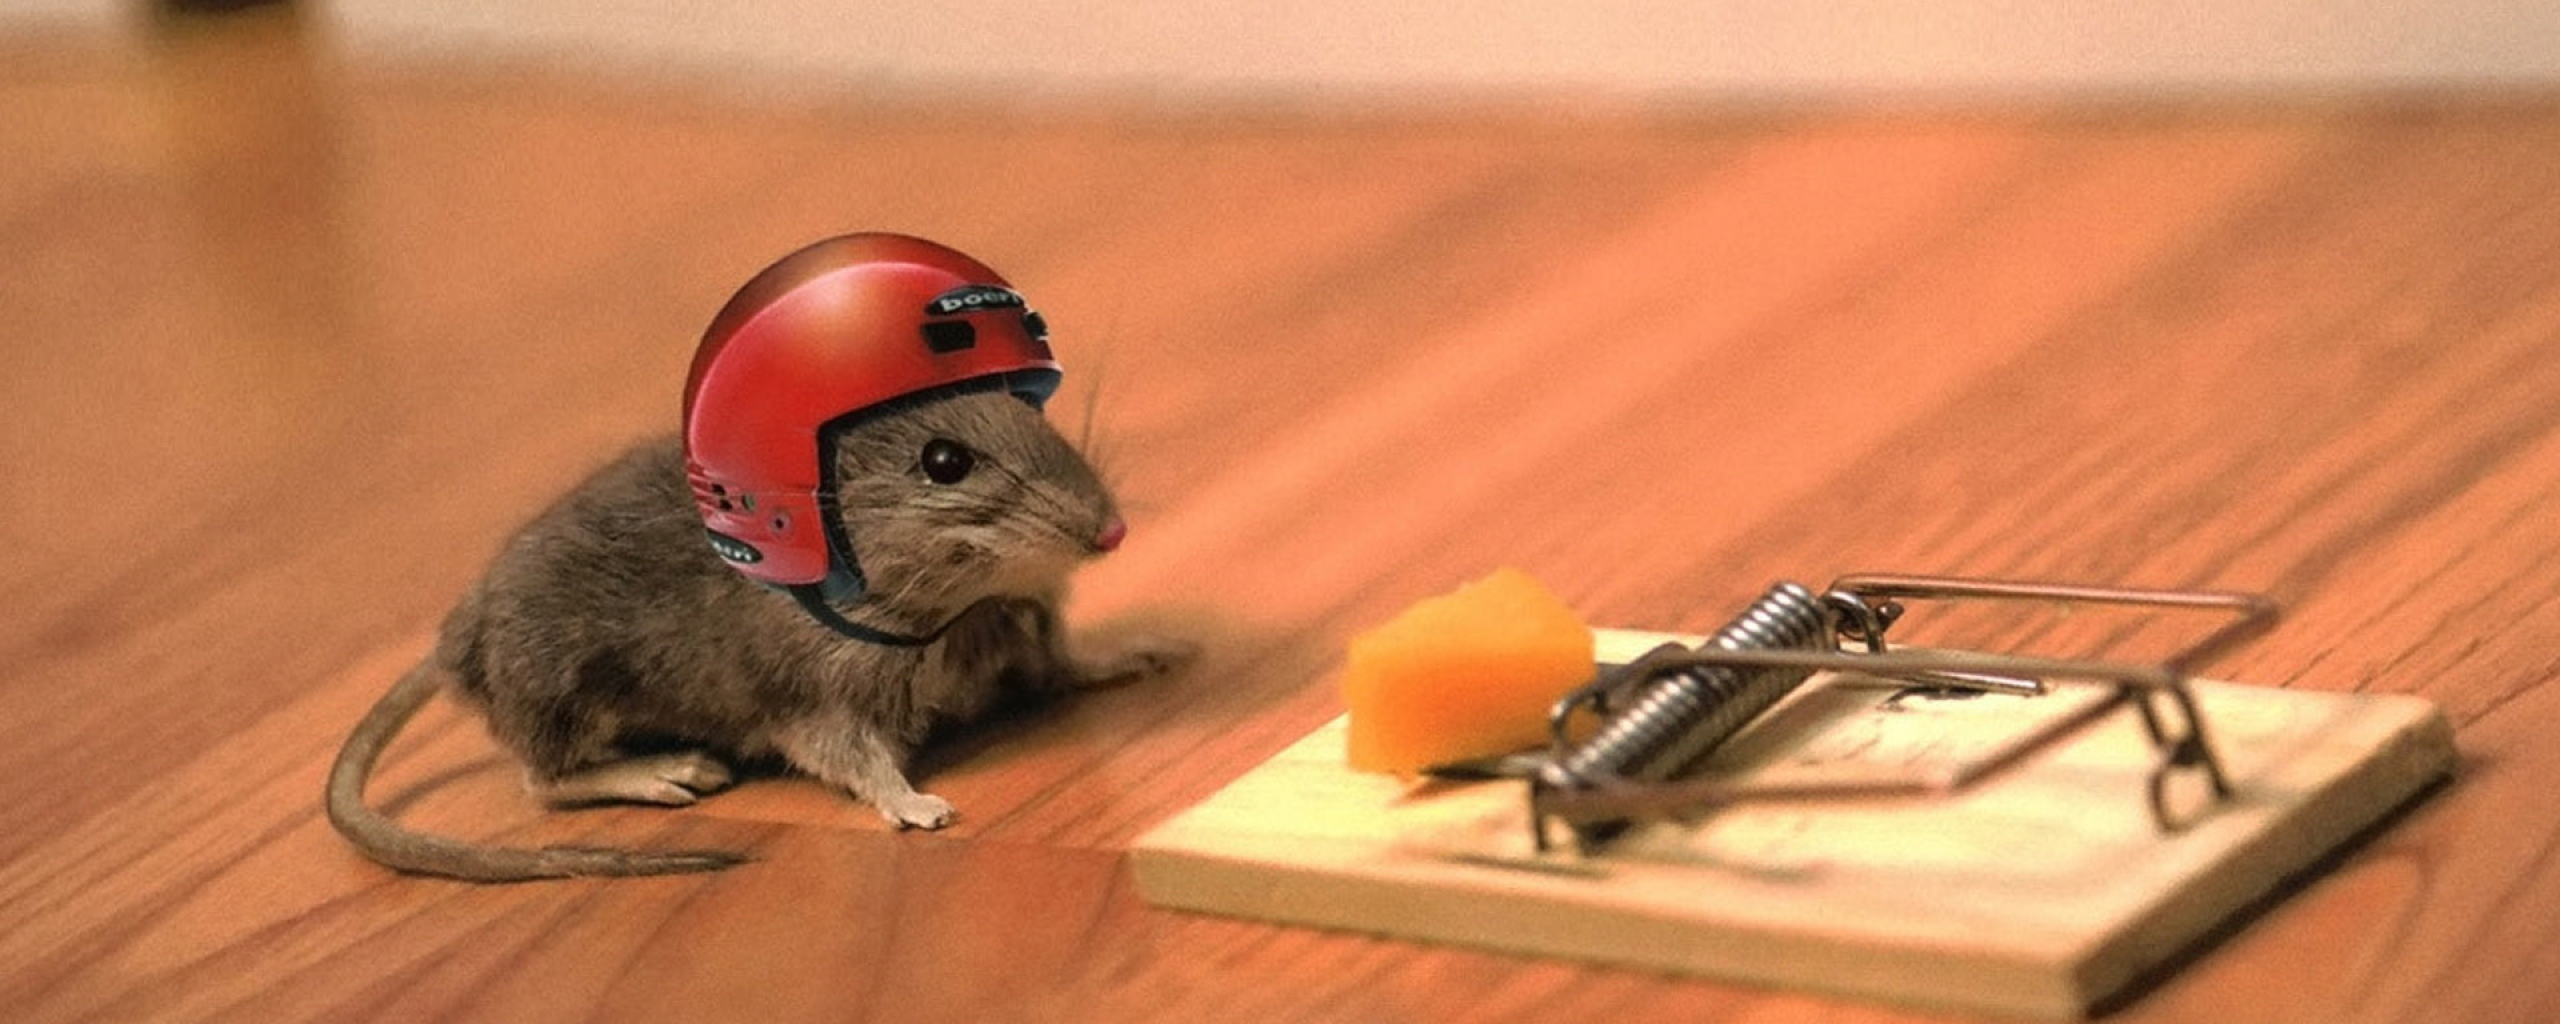 Mouse in helmet